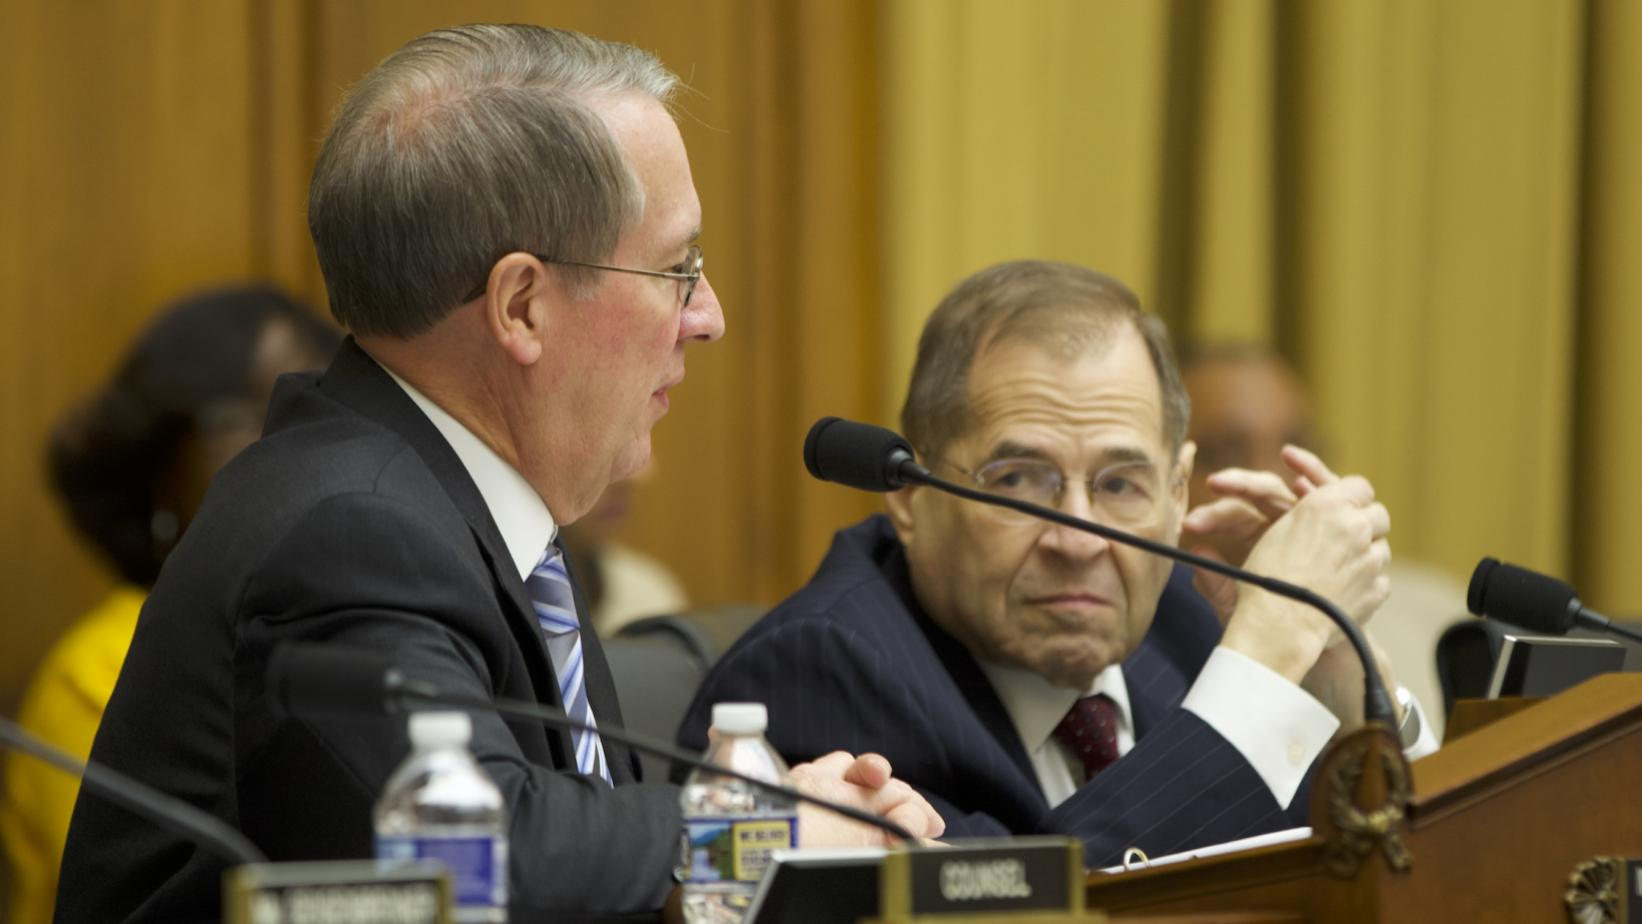 Reps. Bob Goodlatte and Jerrold Nadler